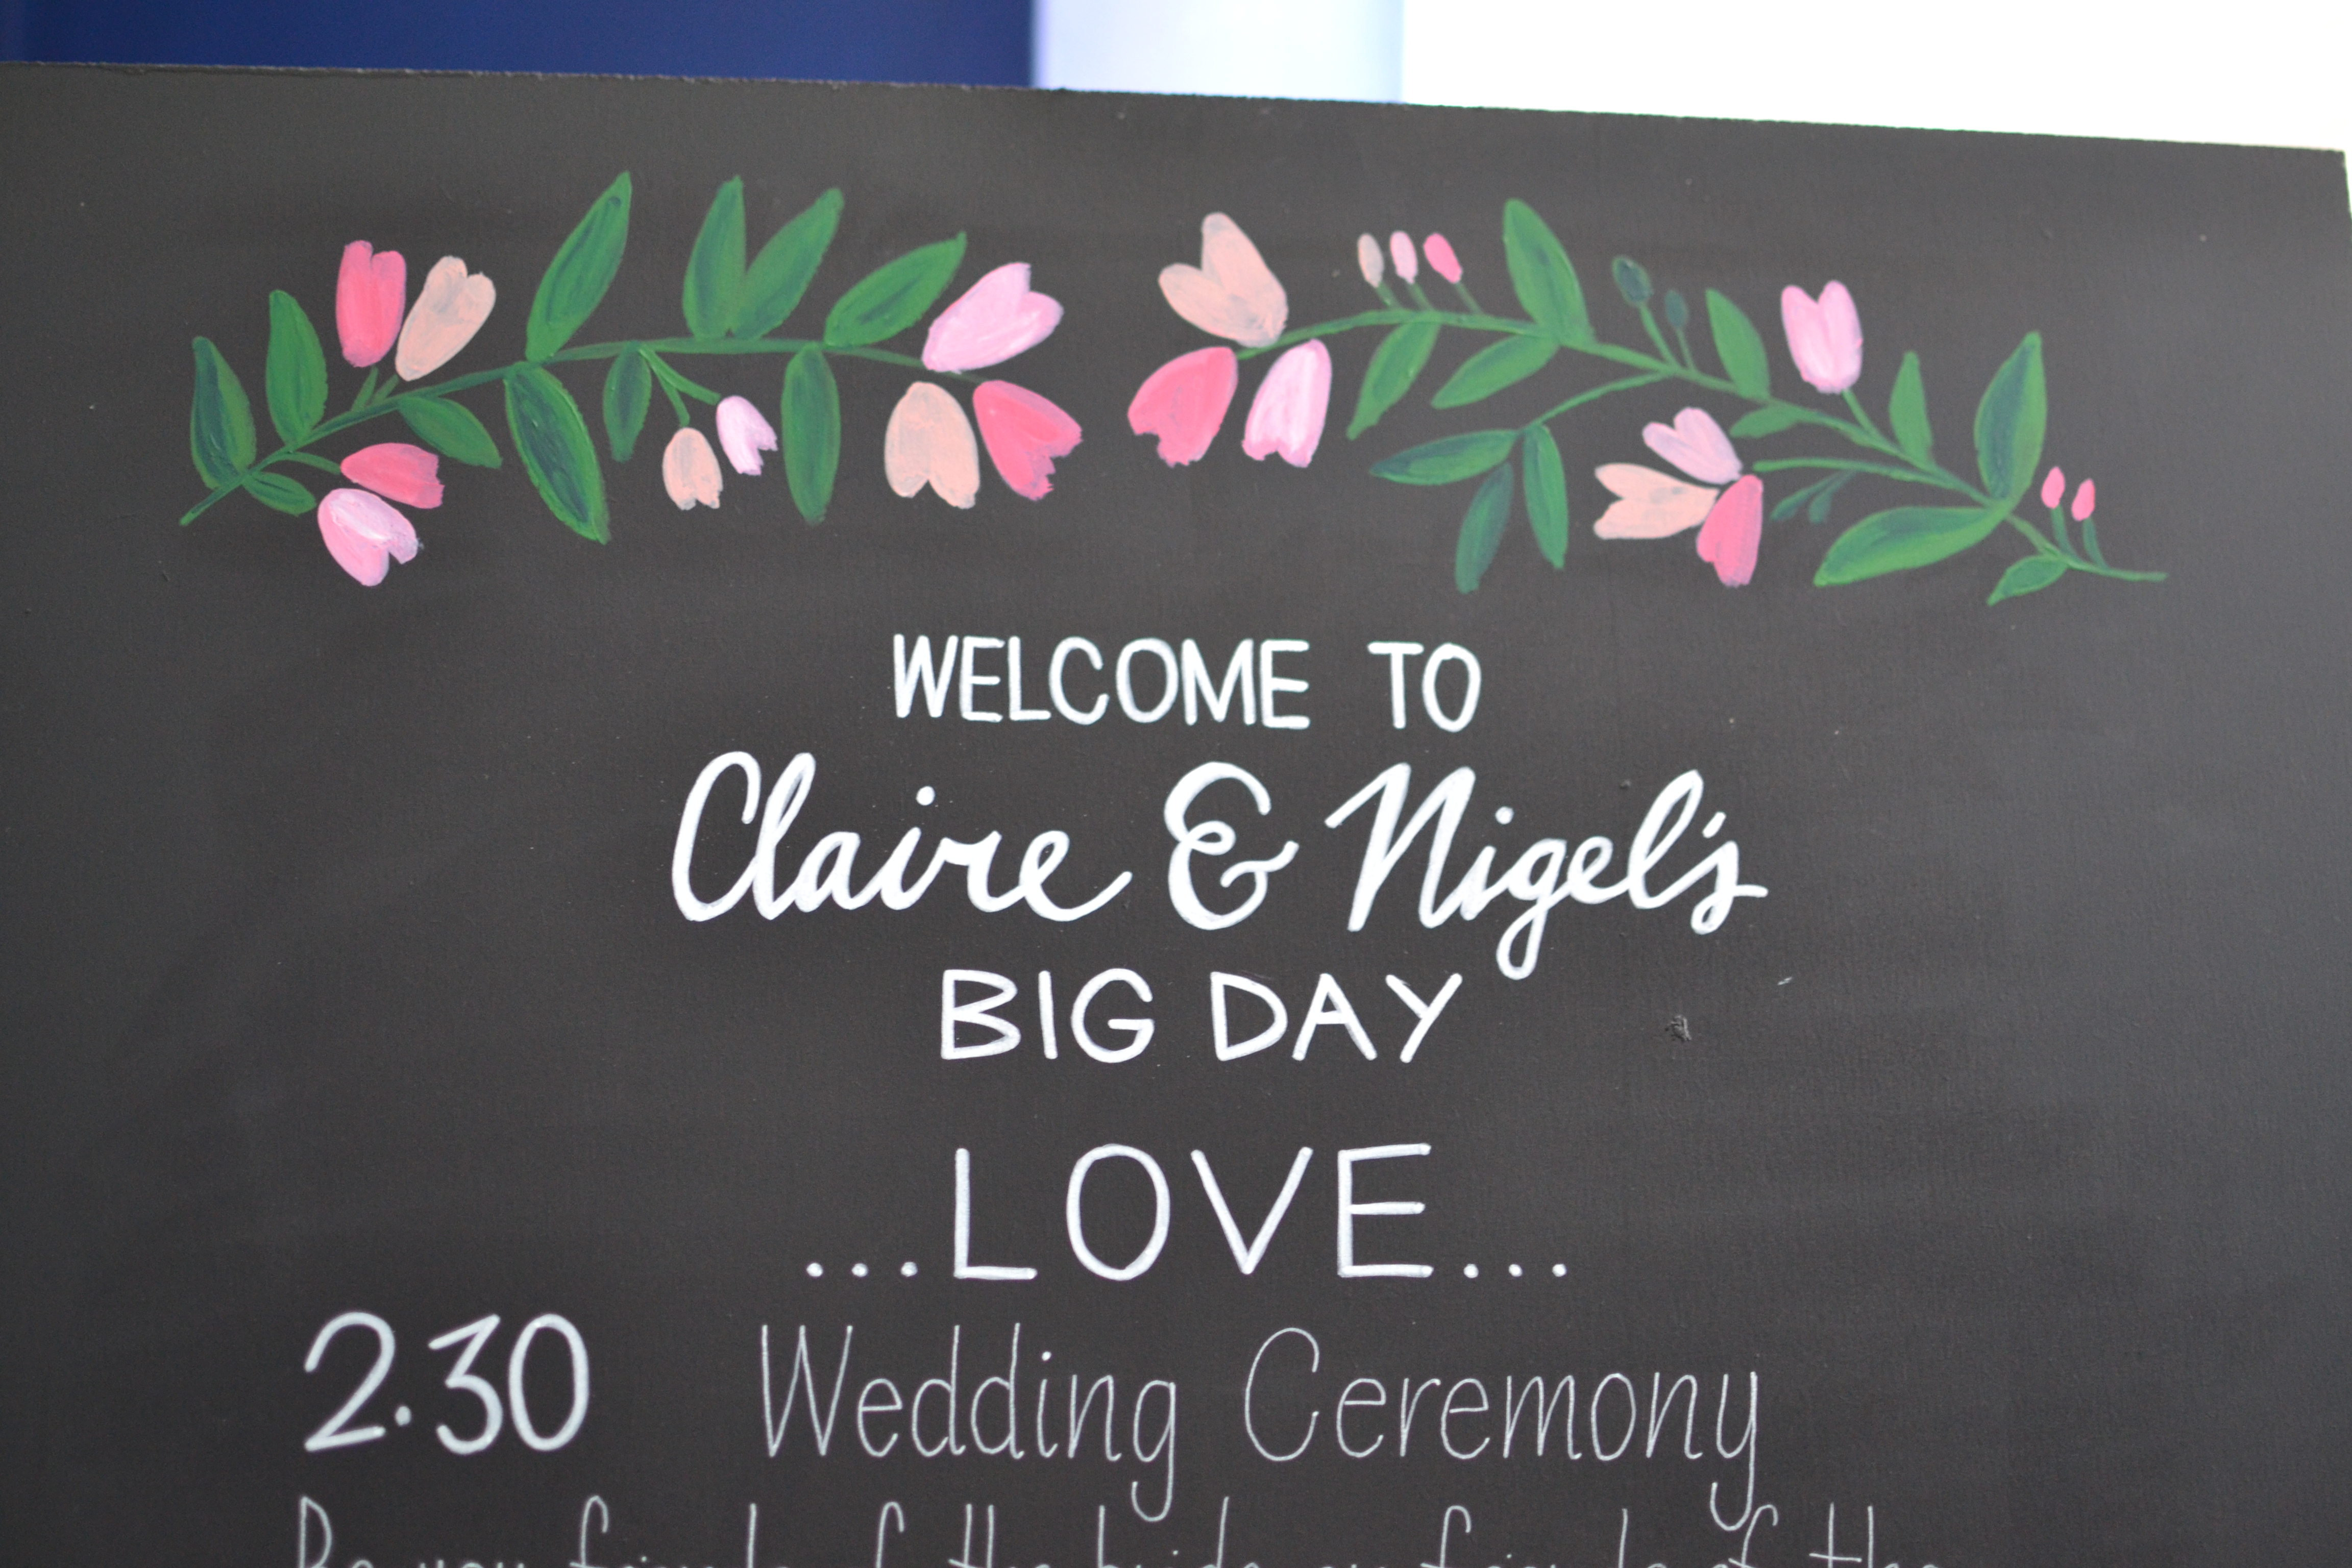 Claire & Nigel 2016 - Wedding Chalkboards - DreamalittleHANDMADE (19)